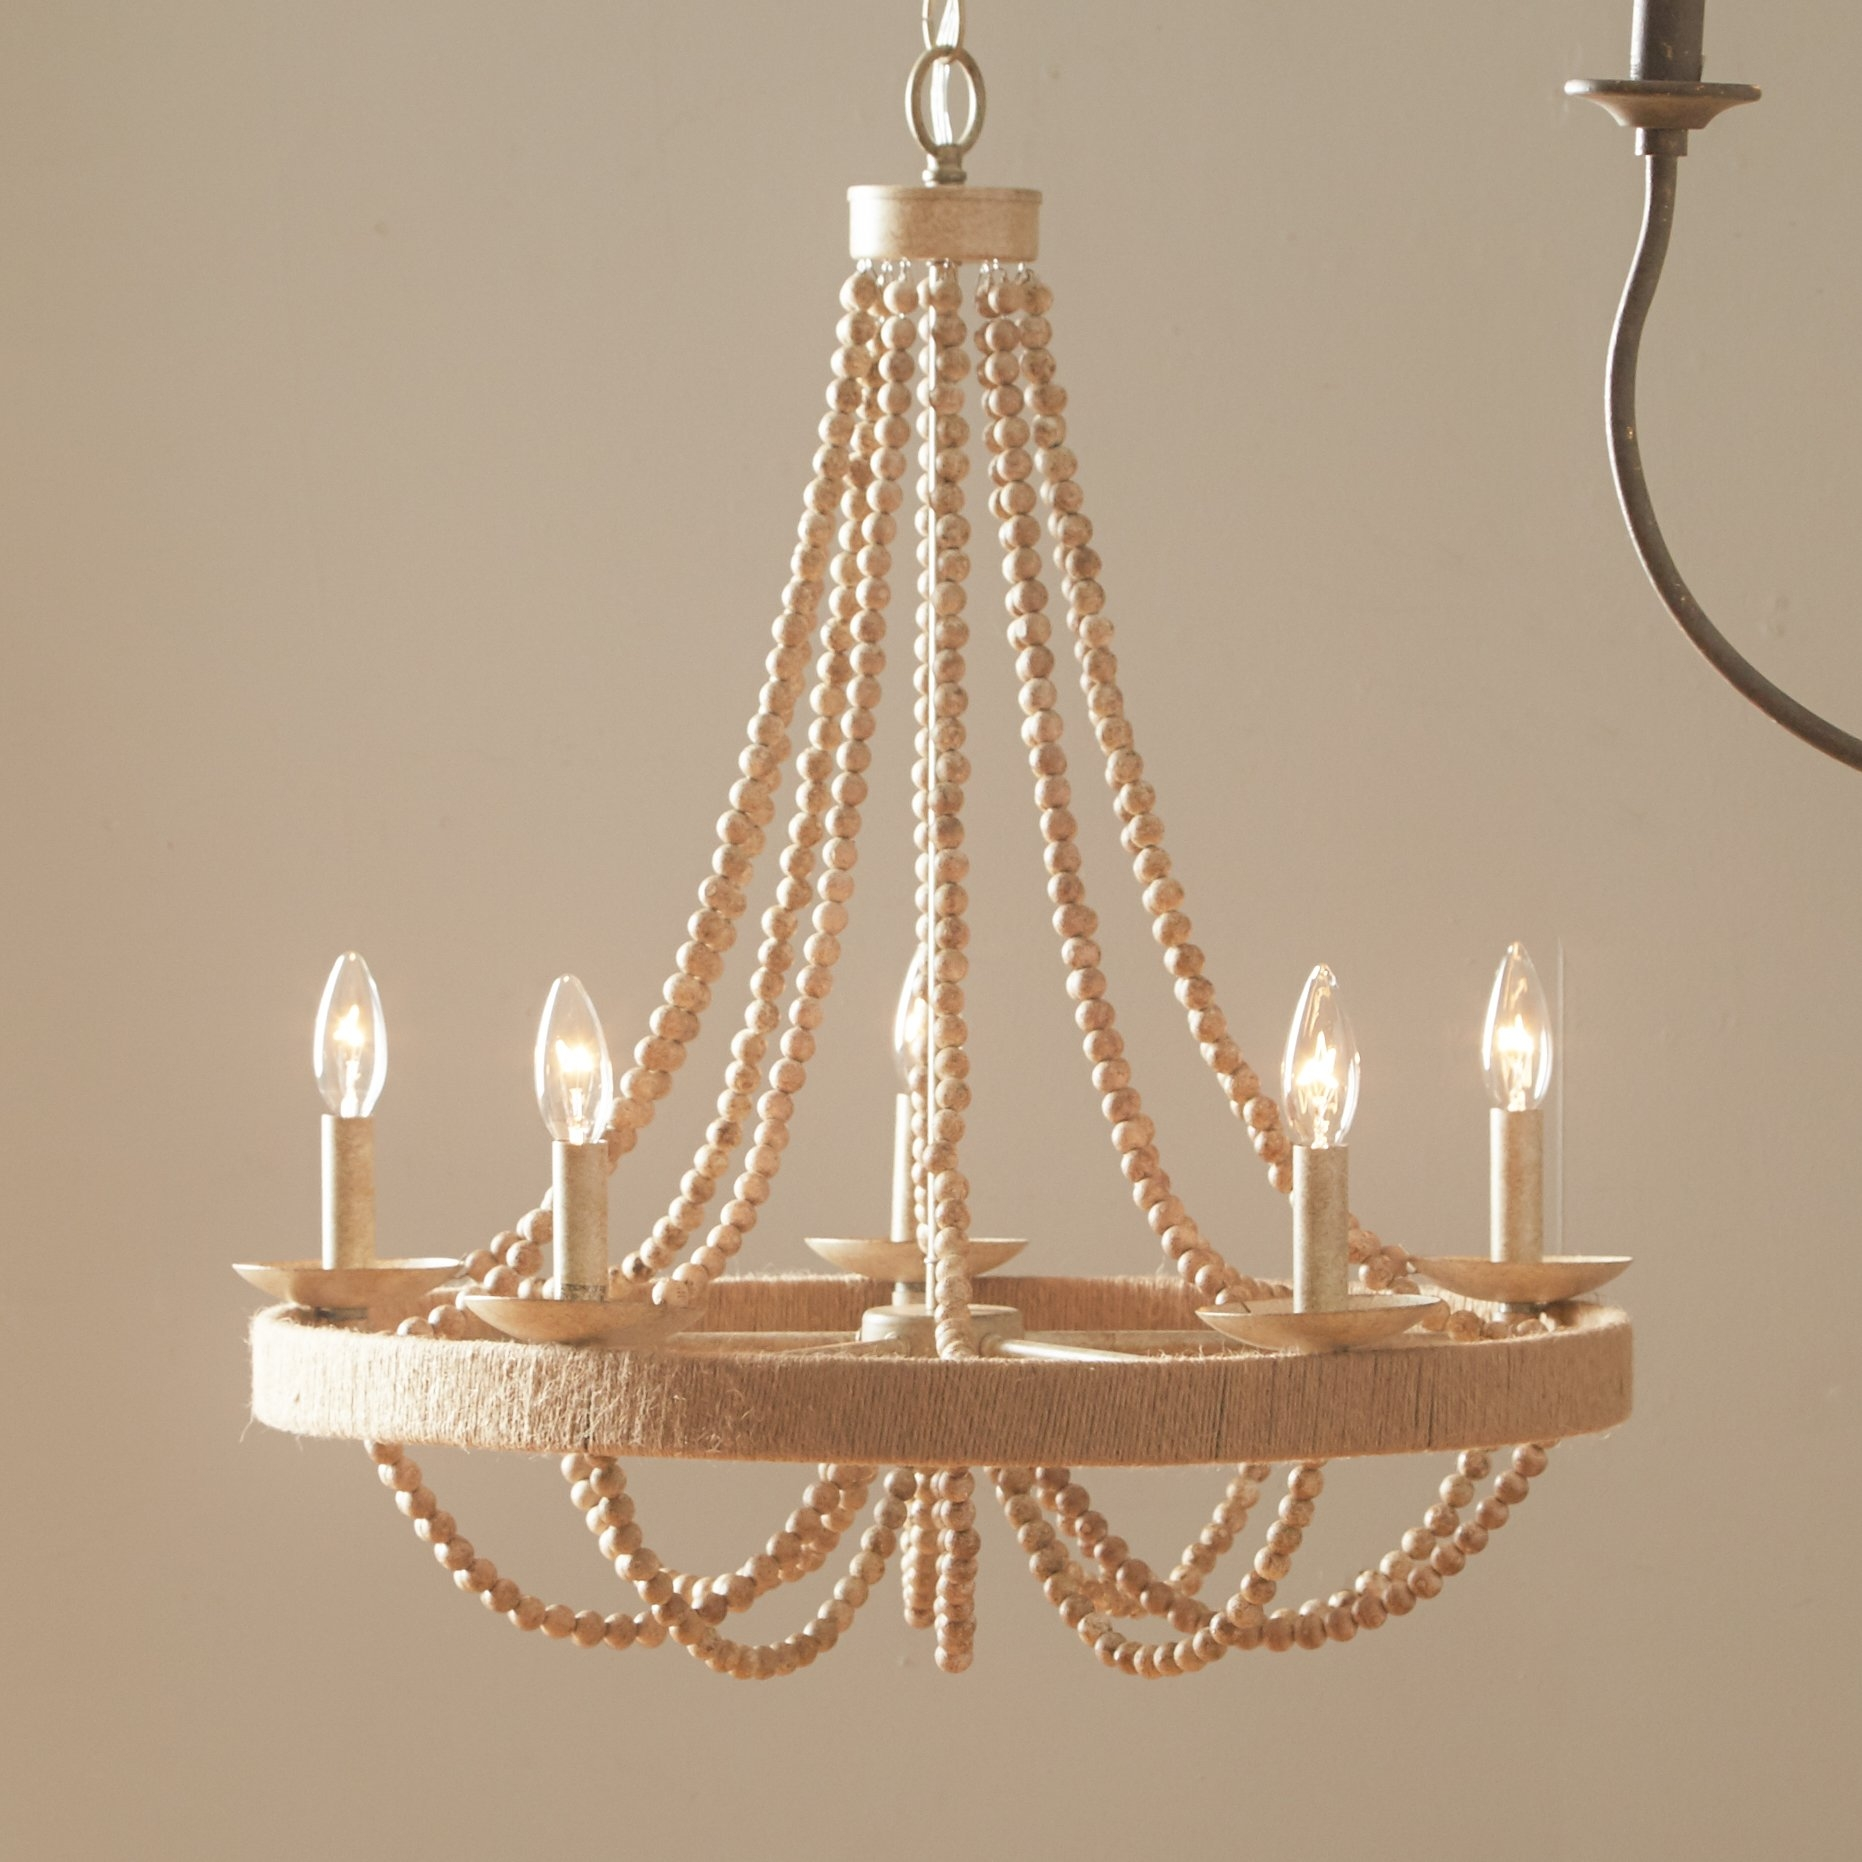 Lantieri 5 Light Candle Chandelier Reviews Joss Main With Regard To Candle Chandelier (Image 11 of 15)